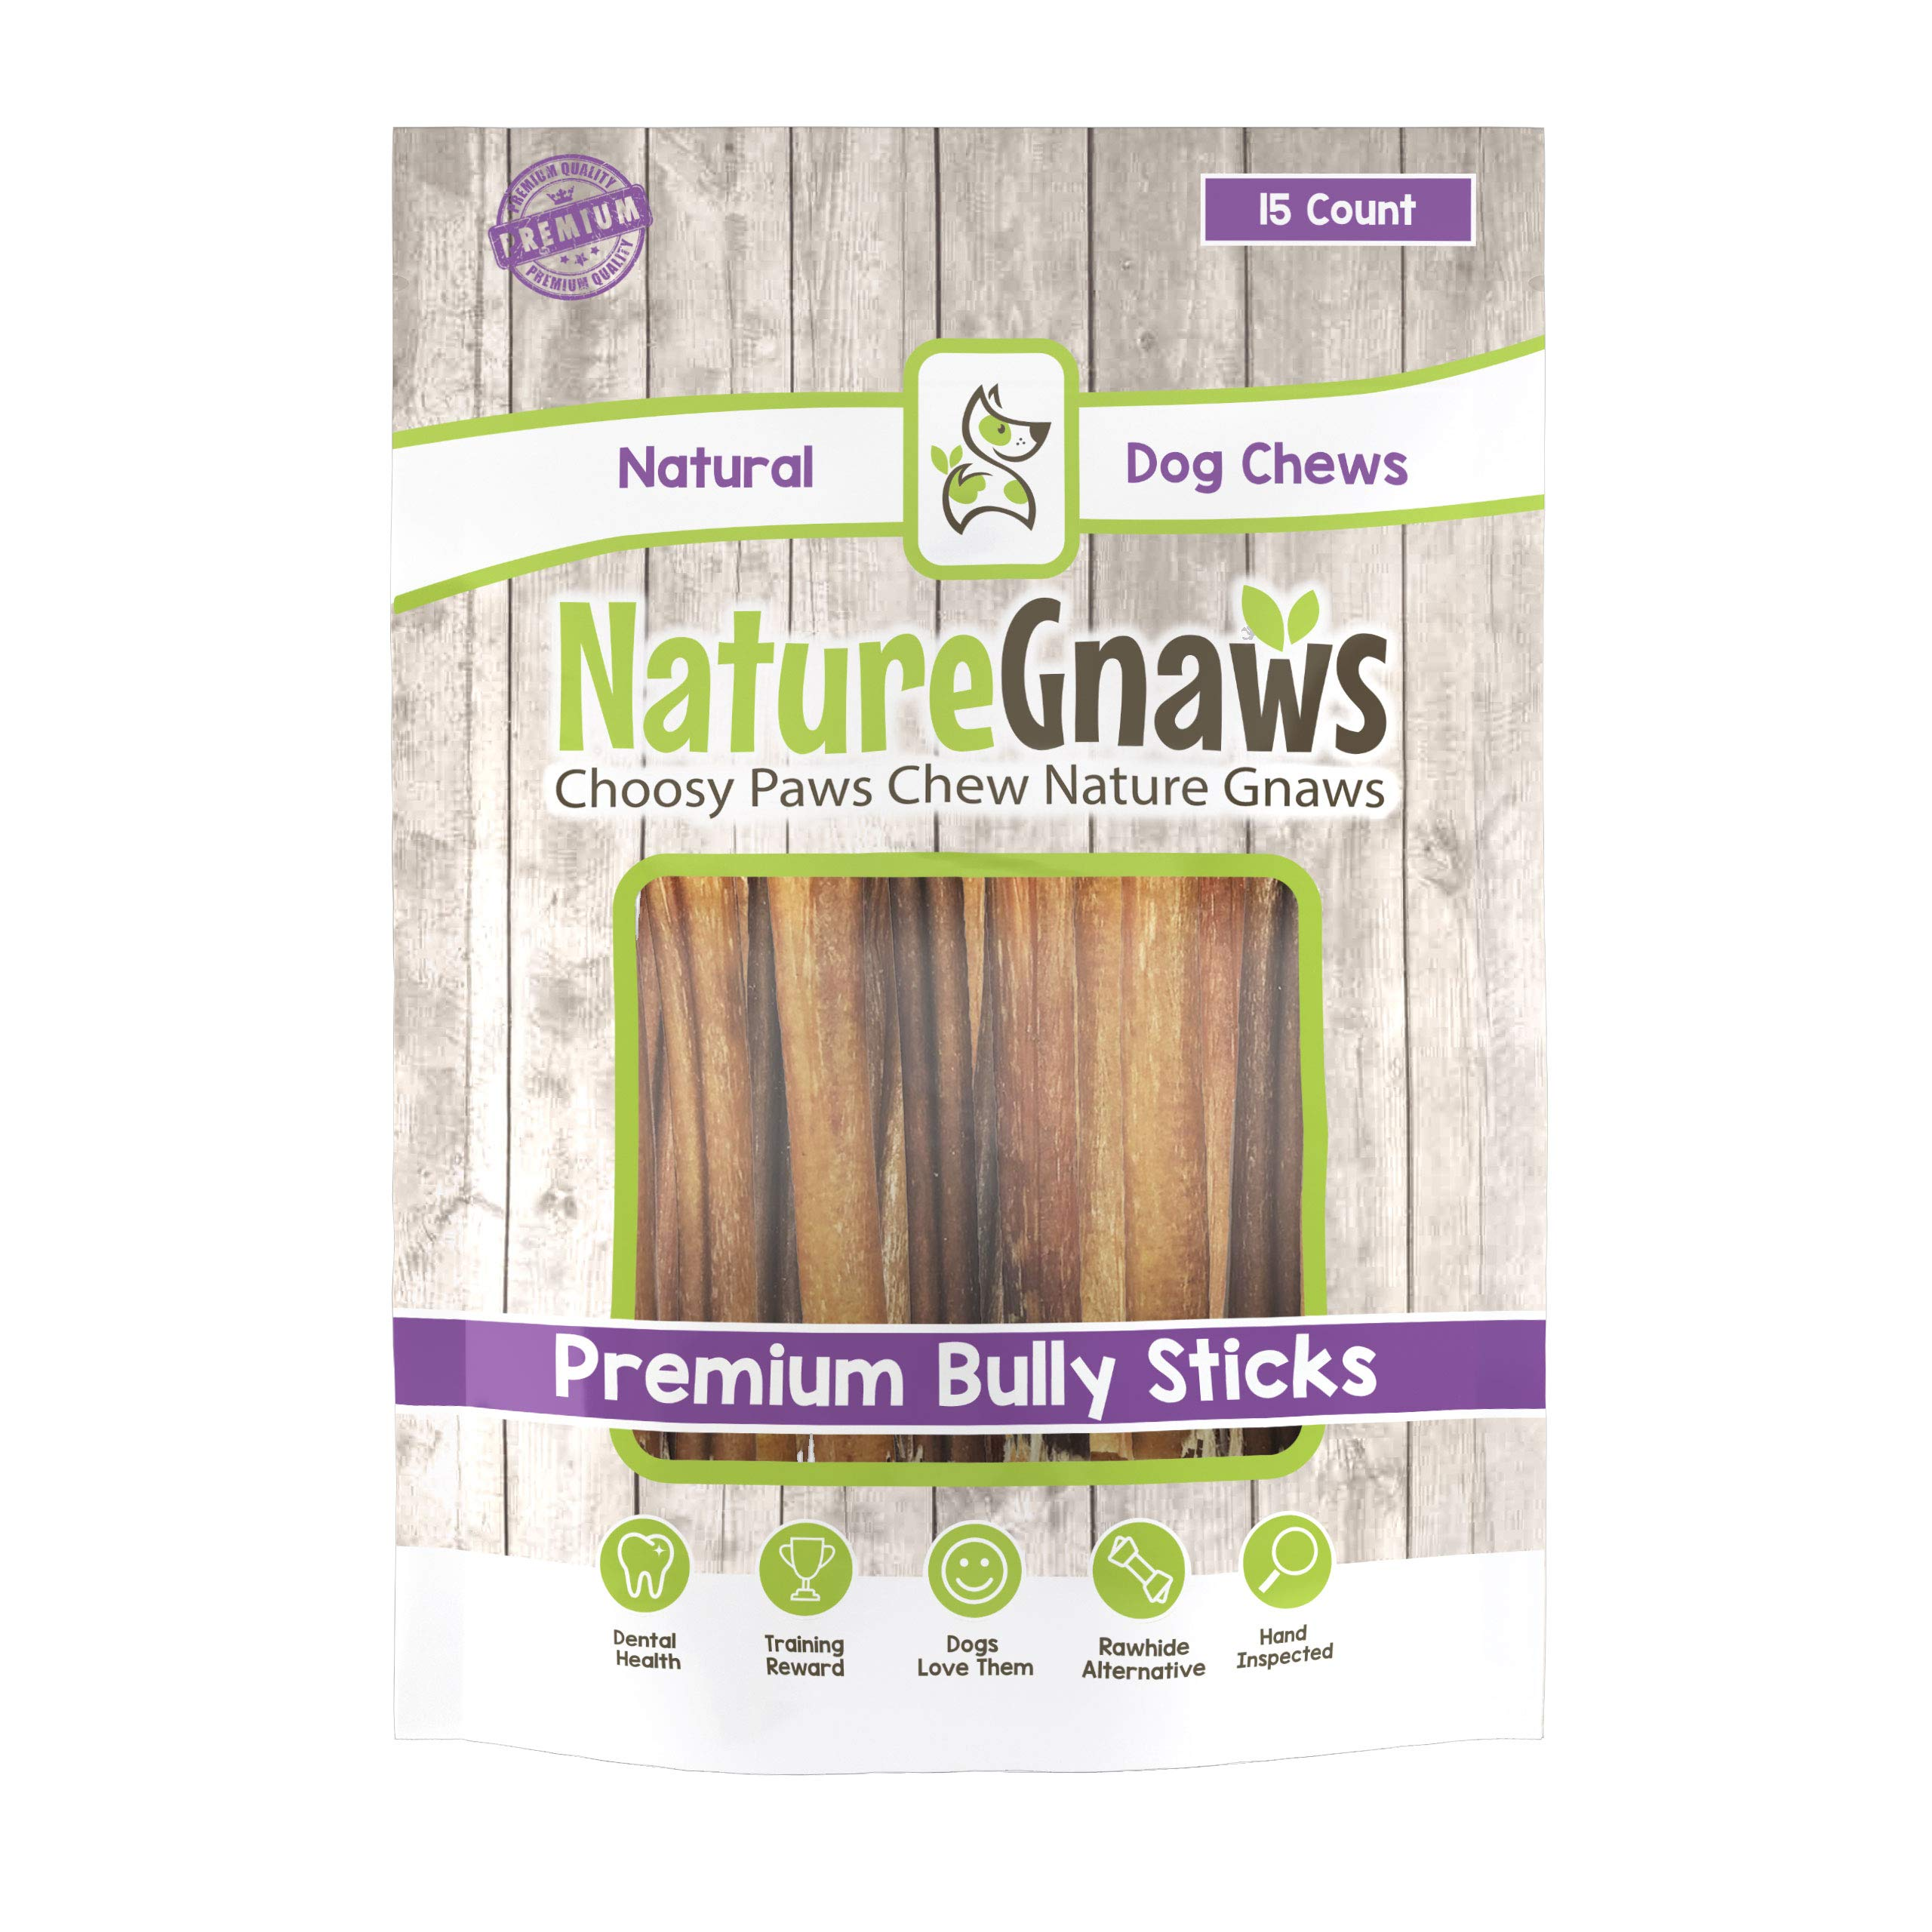 Nature Gnaws Small Bully Sticks 5-6 inch (15 Pack) - 100% Natural Grass Fed Premium Beef Dog Chews by Nature Gnaws